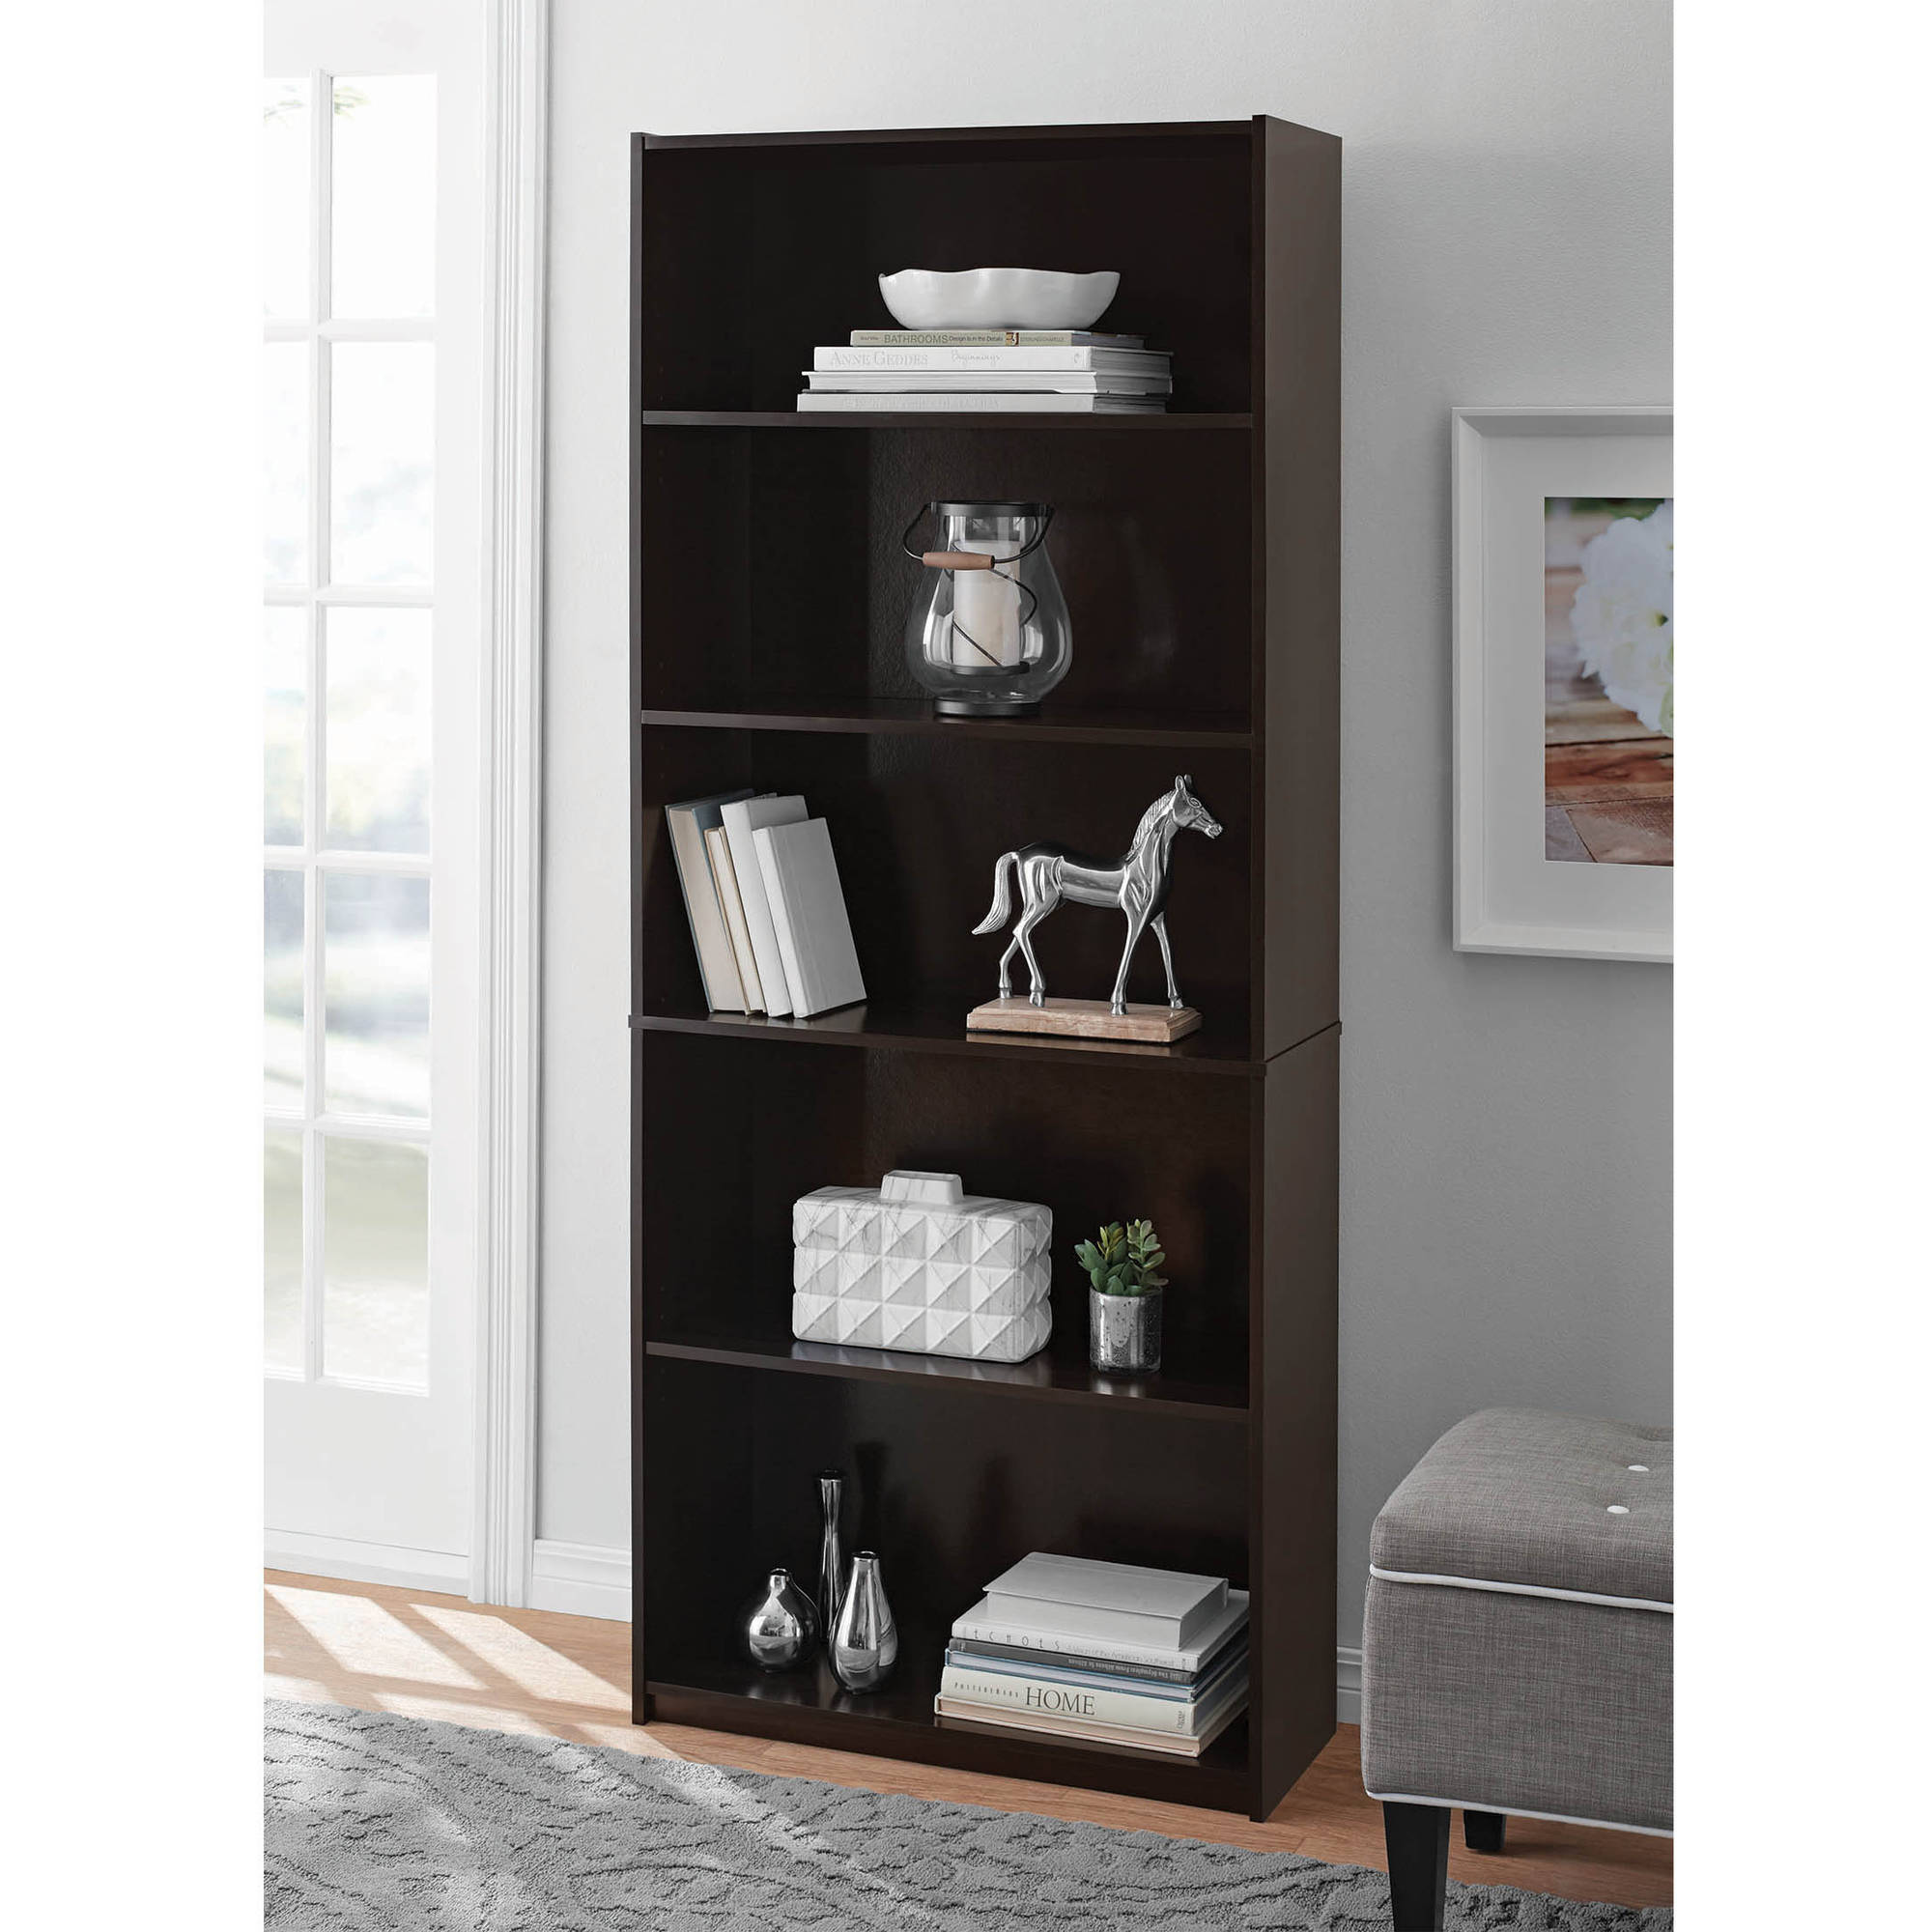 Mainstays 5-Shelf Standard Wood Bookcase, Expresso